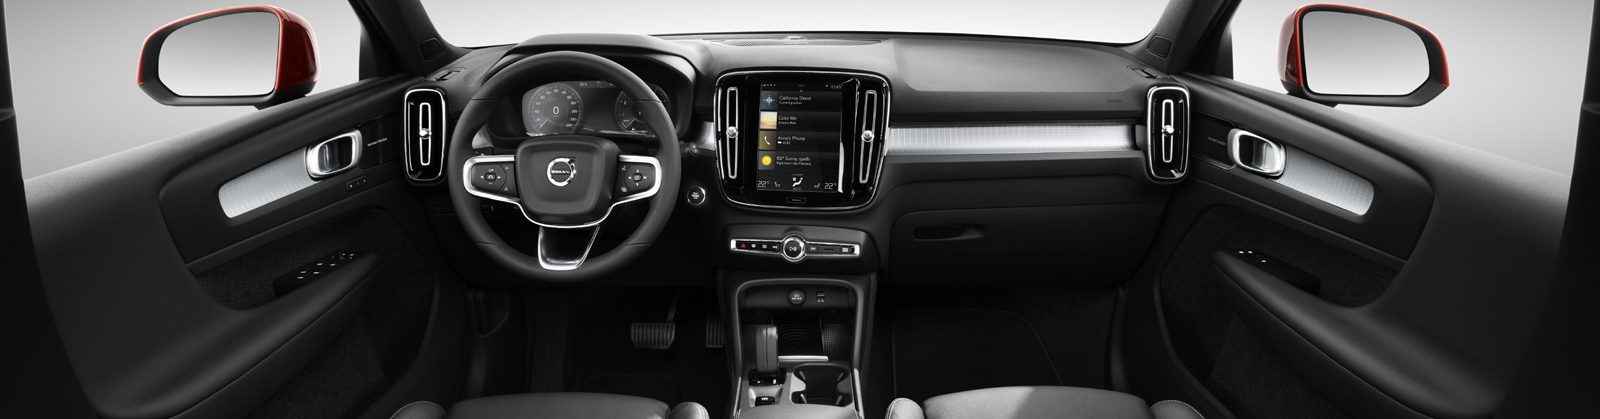 XC40 interieur bannerformaat.jpg